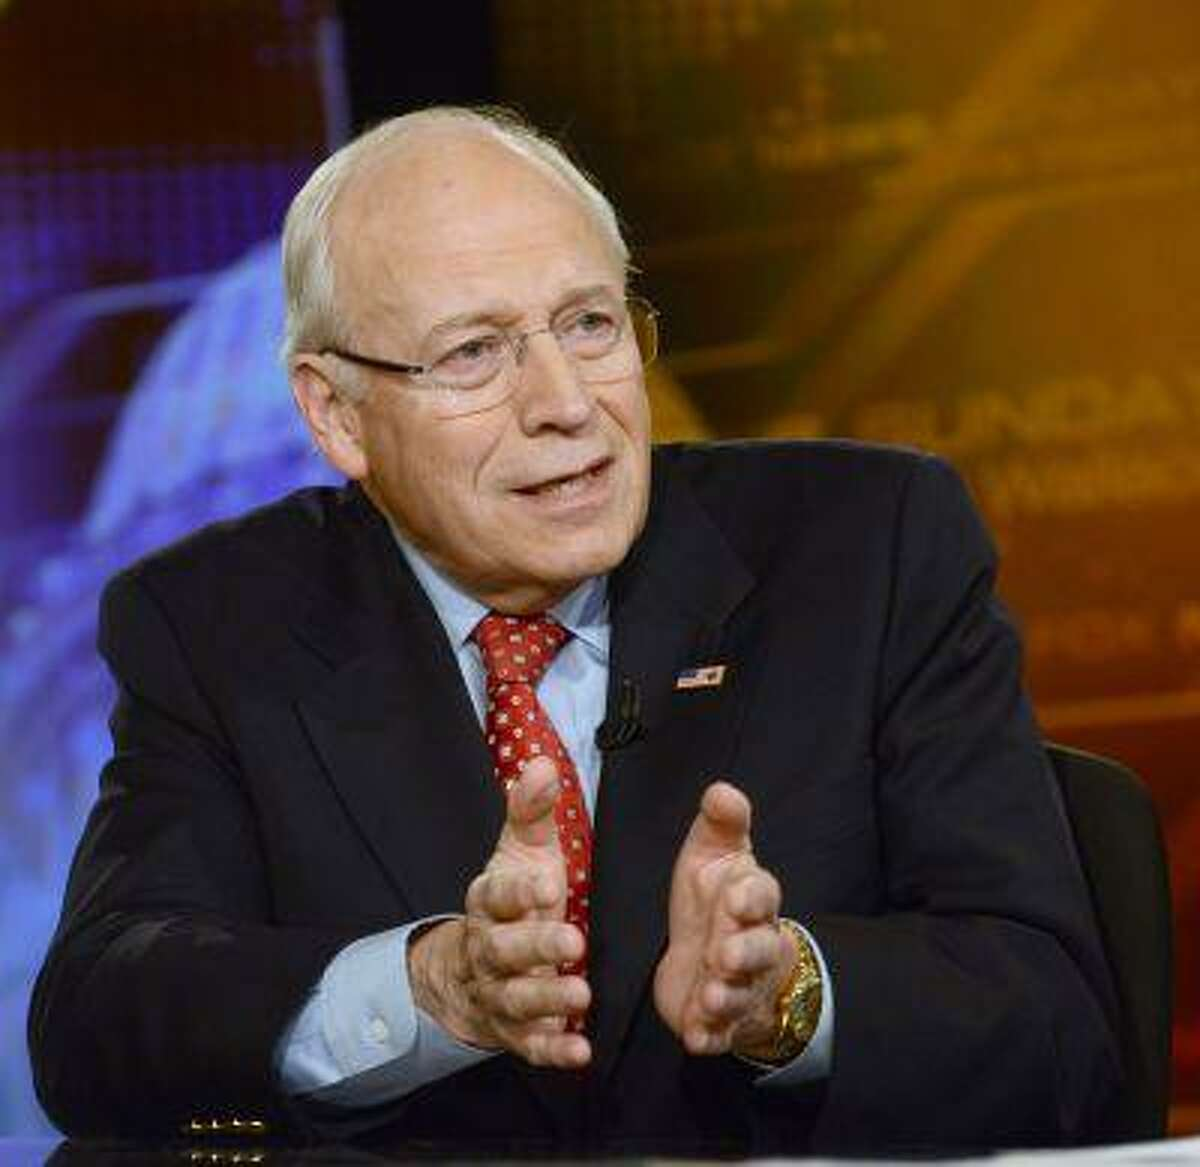 RETRANSMITTING TO ADD NAME OF PHOTOGRAPHER - In this photo released by Fox News Sunday, June 16, 2013, former Vice President Dick Cheney speaks on Fox News Sunday in Washington. Cheney says his health is